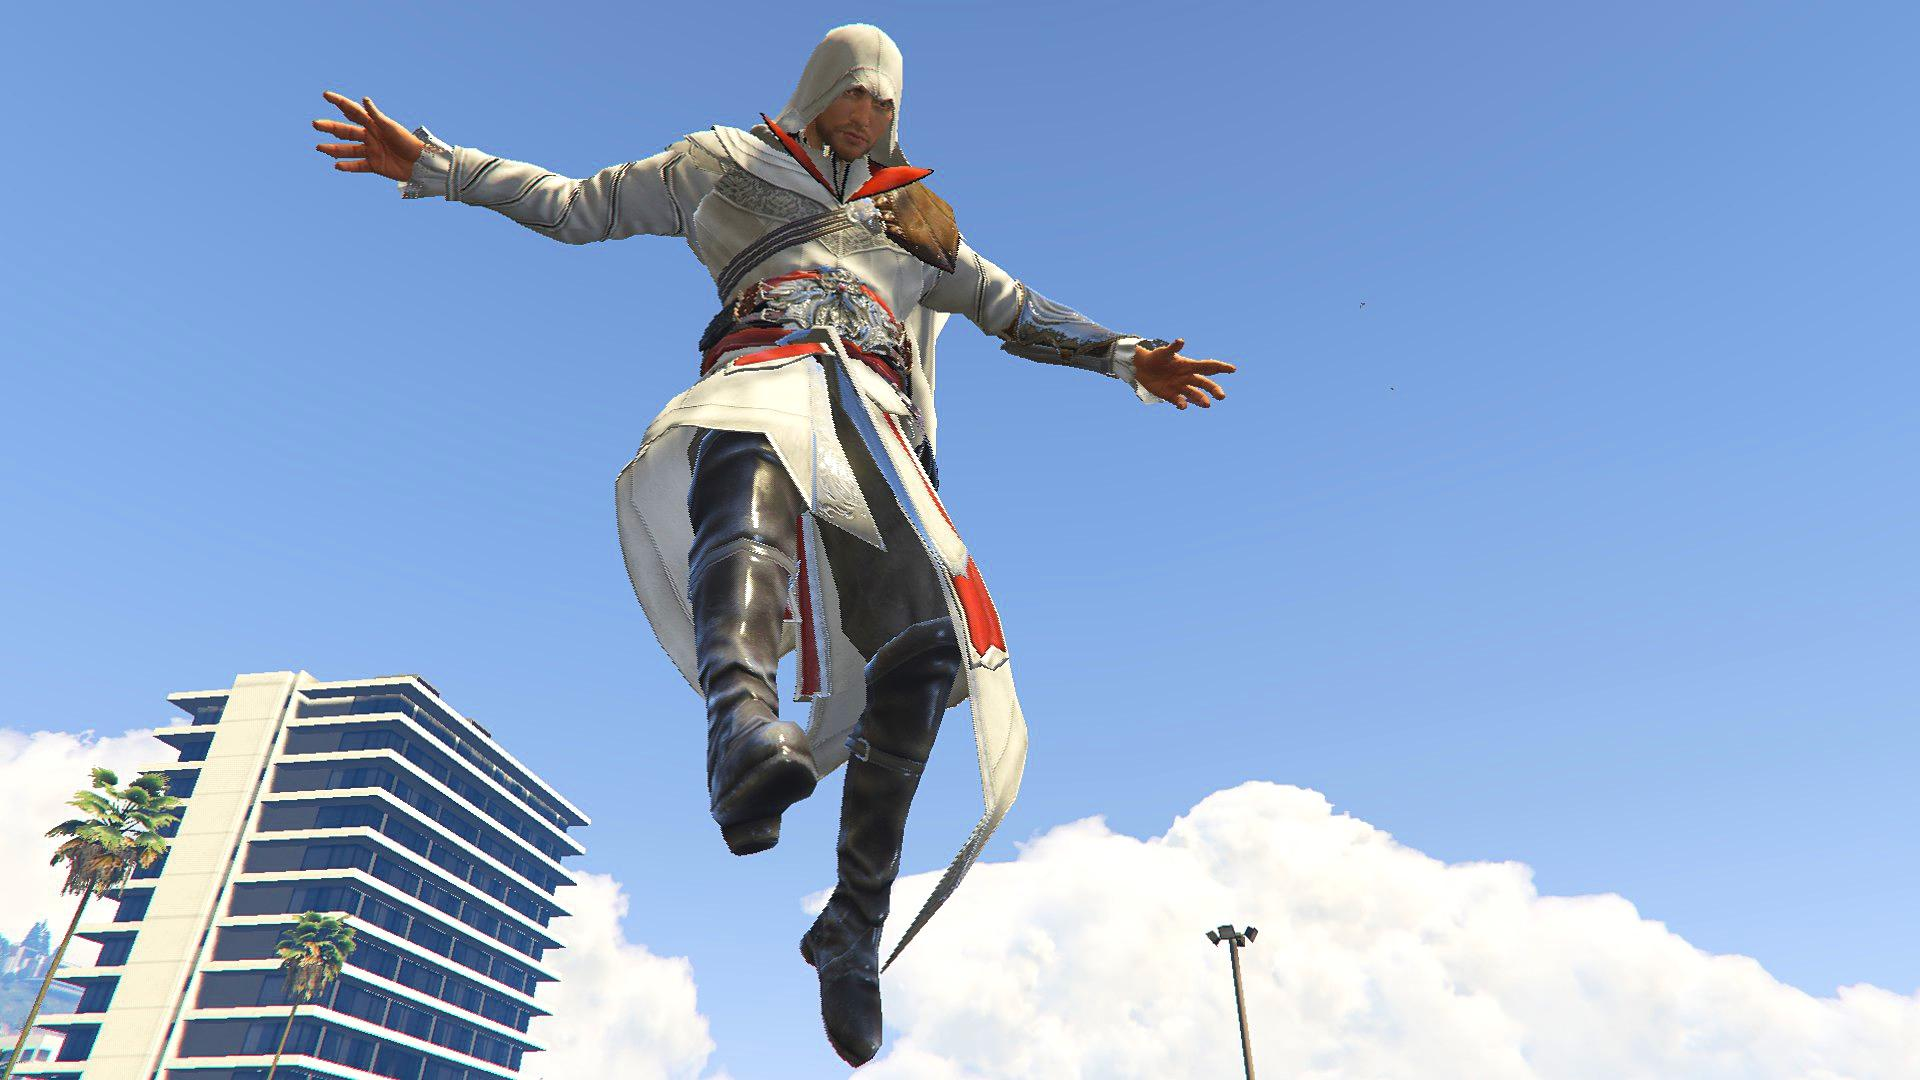 Gta 5 Cheats Ps4 Nederlands Acu Ezio Outfit [add-on Ped] - Gta5-mods.com